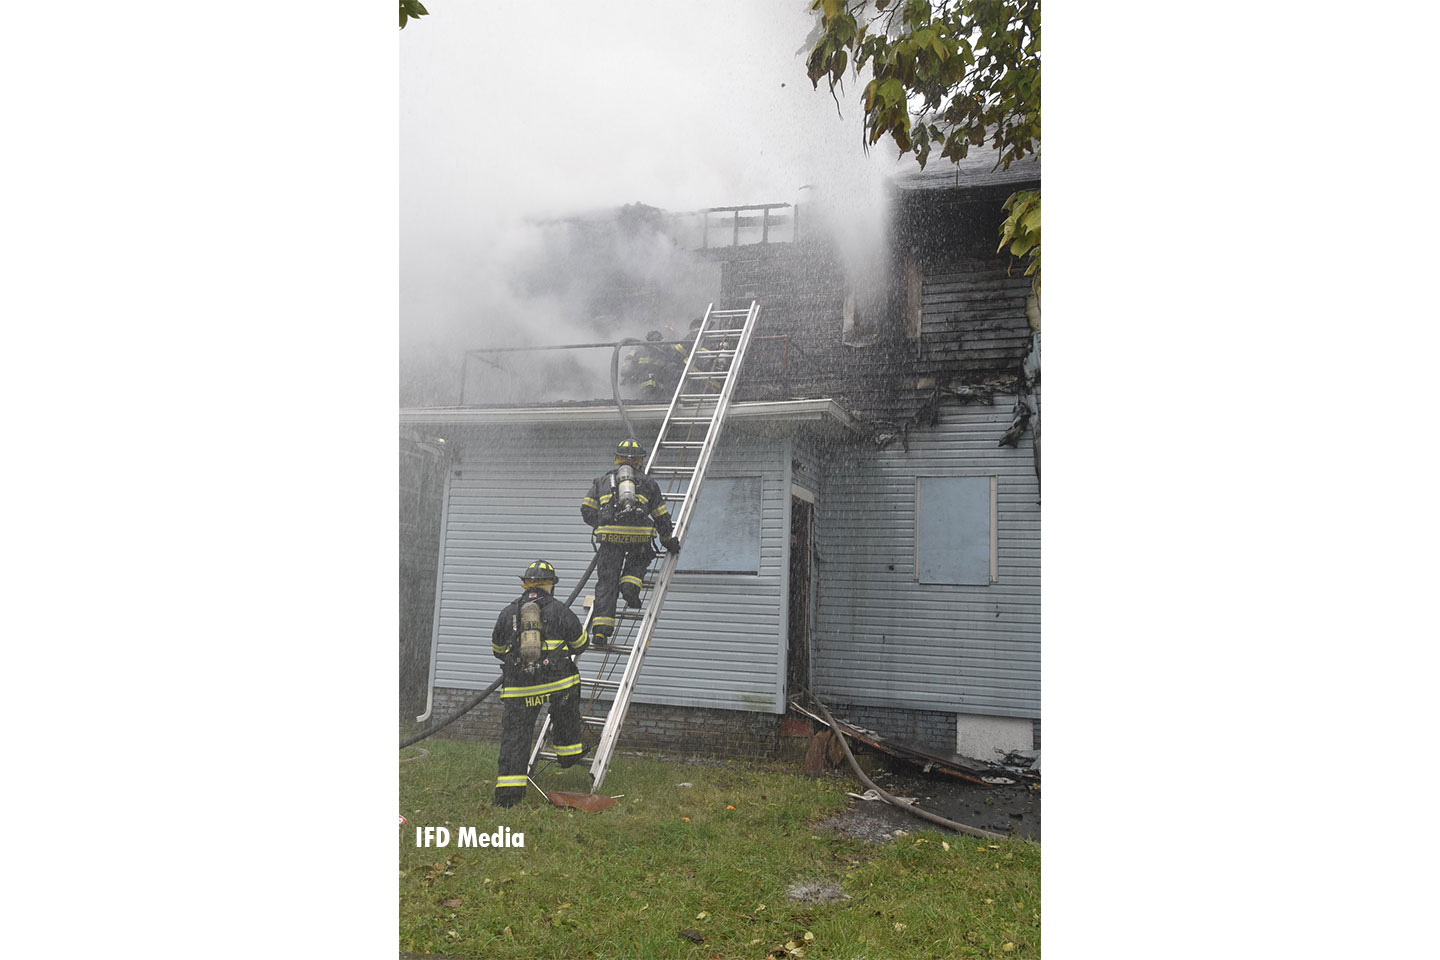 Firefighters advance a line up a ladder at the fire.